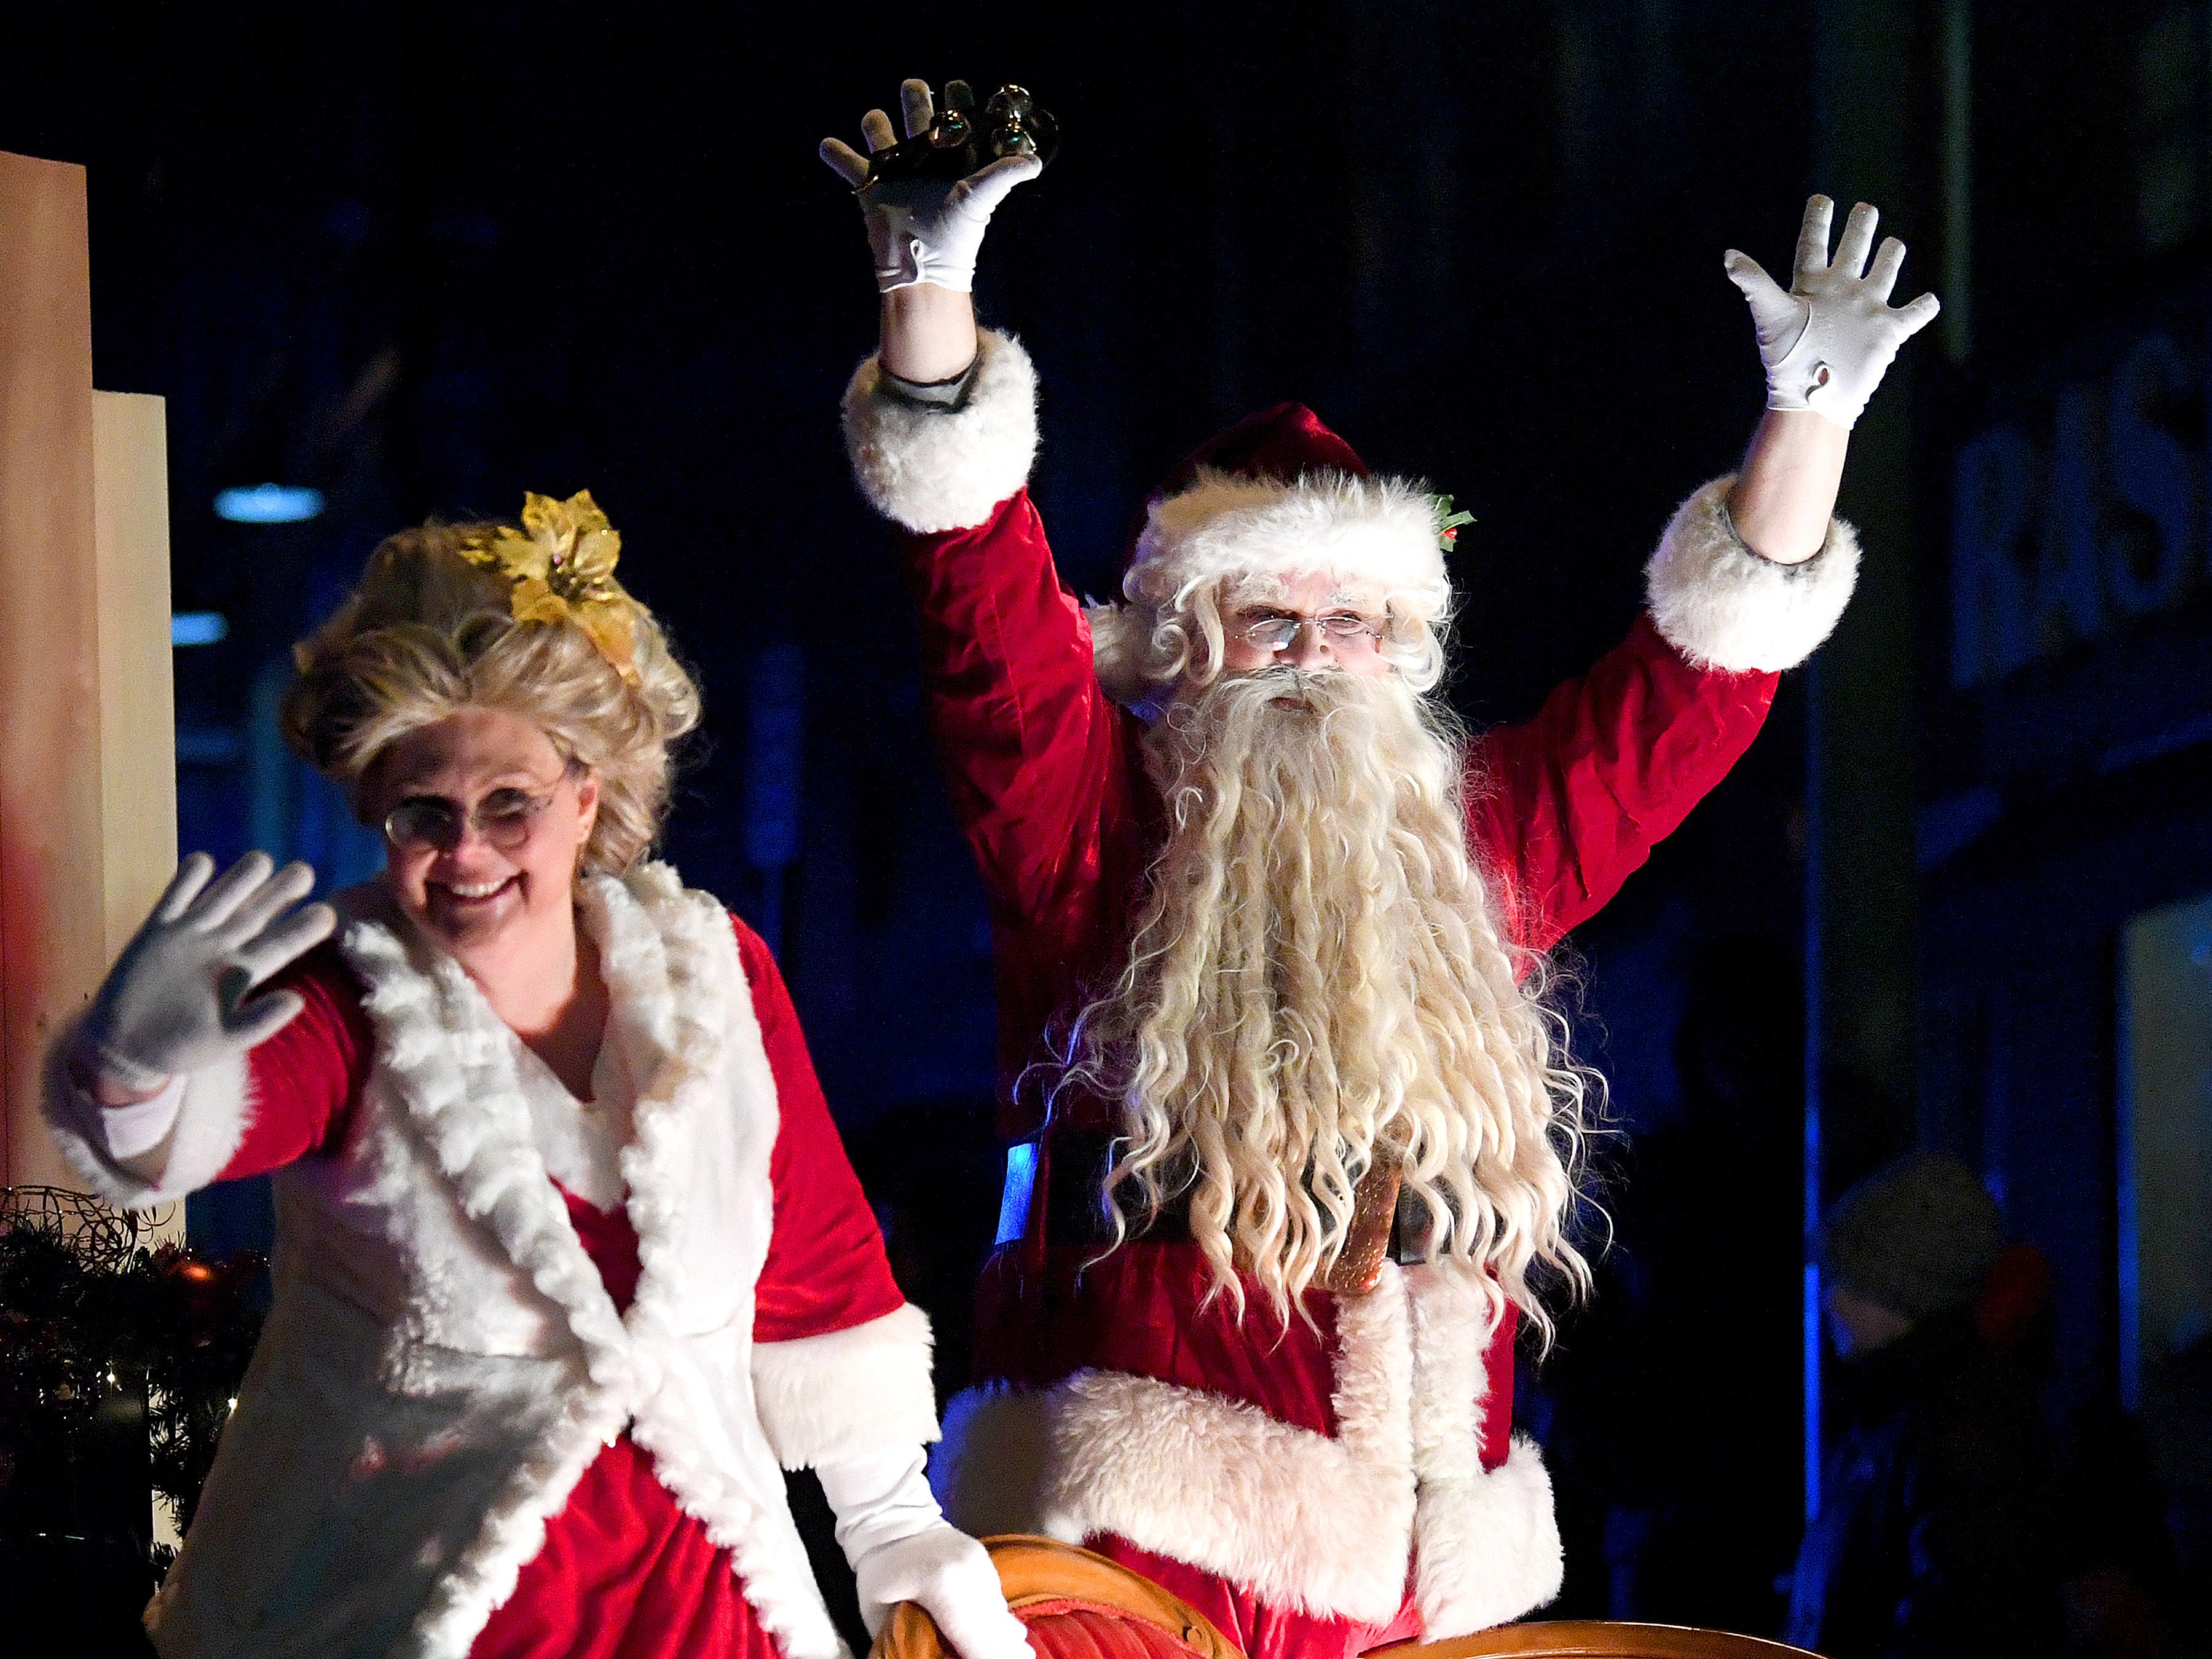 Santa Claus and Mrs. Claus wave to the crowd from their float at the end of the Staunton Christmas Parade on Monday, Nov. 26, 2018.